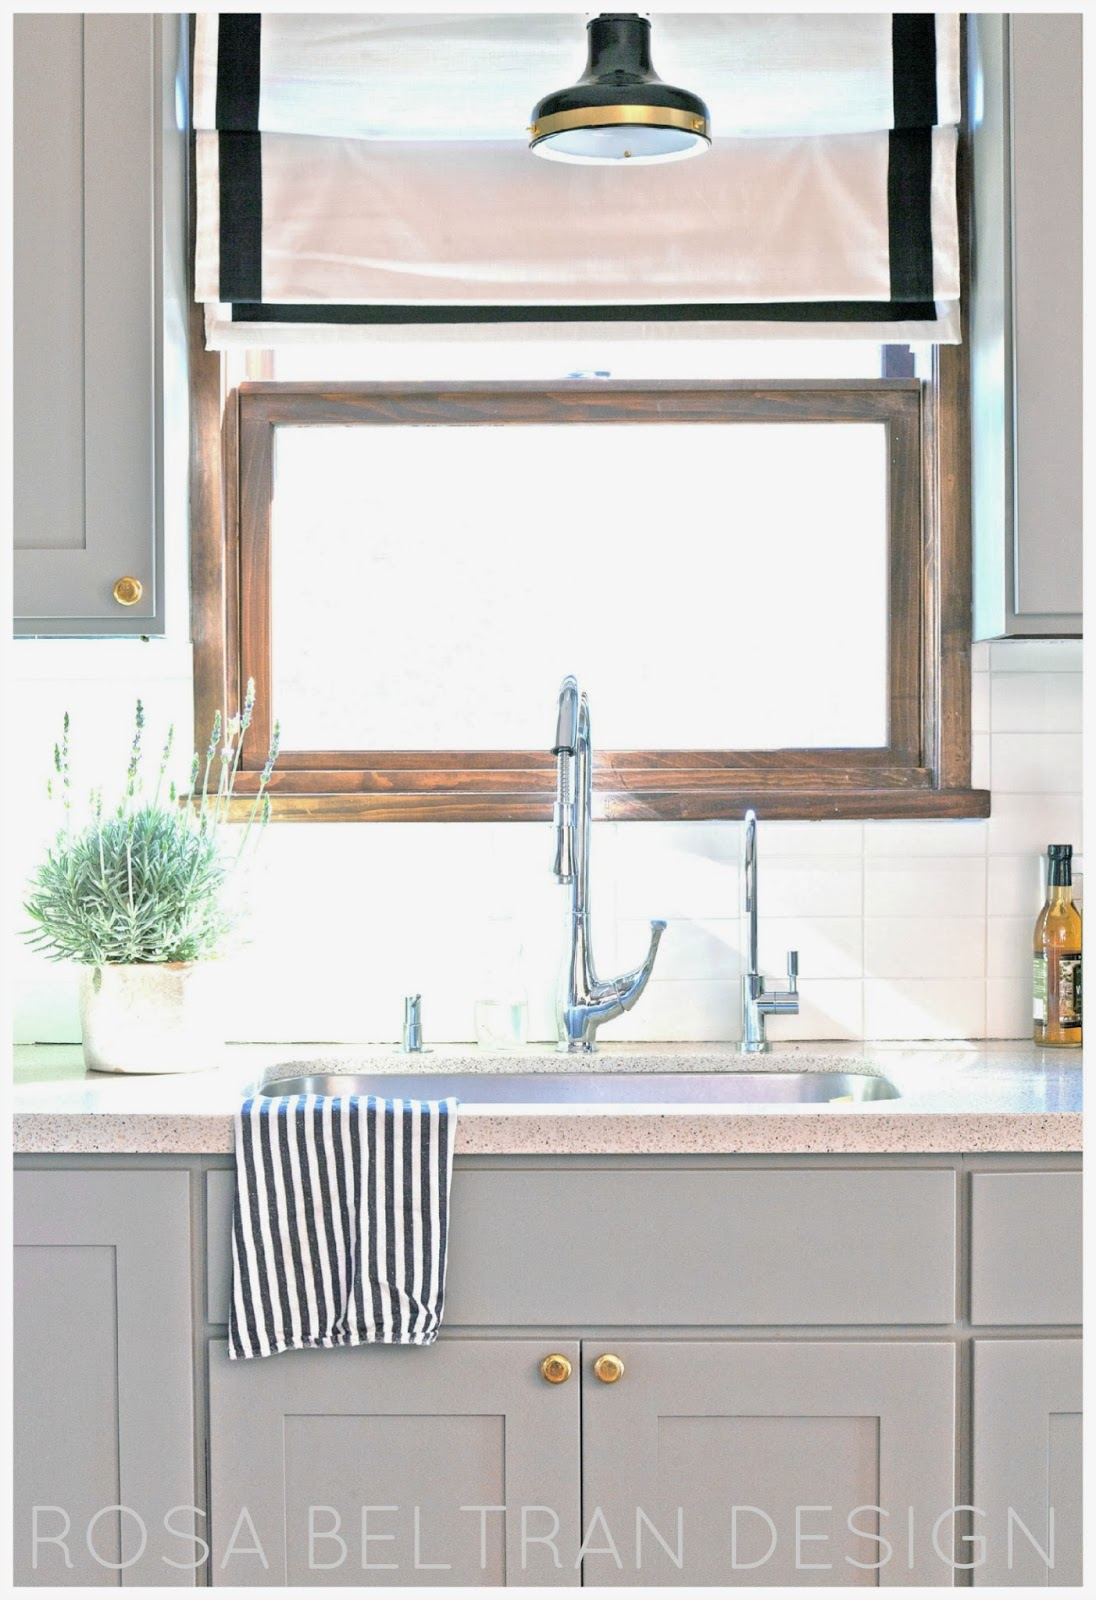 Rosa Beltran Design DIY PAINTED KITCHEN CABINETS